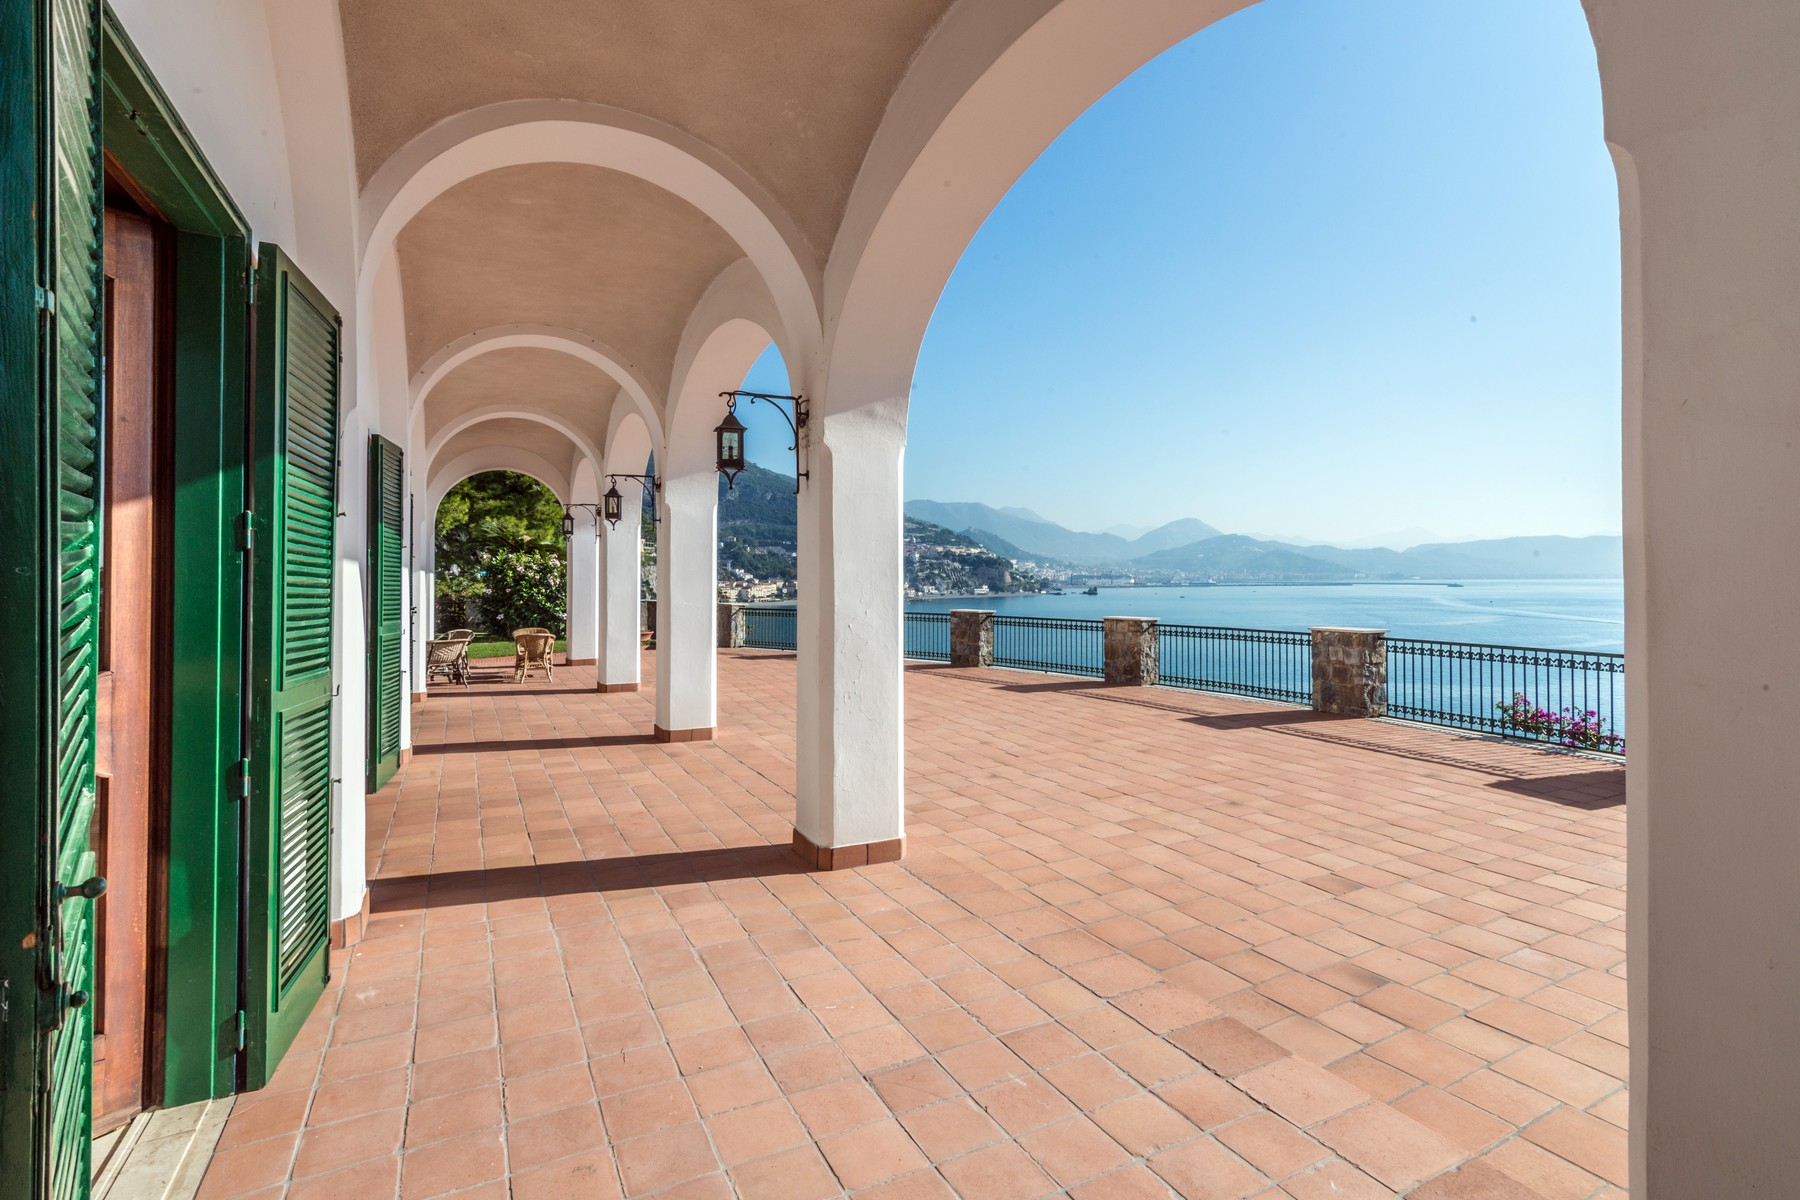 Additional photo for property listing at Unique seafront villa on the Amalfi Coast Vietri sul Mare Vietri Sul Mare, Salerno 84019 Italia